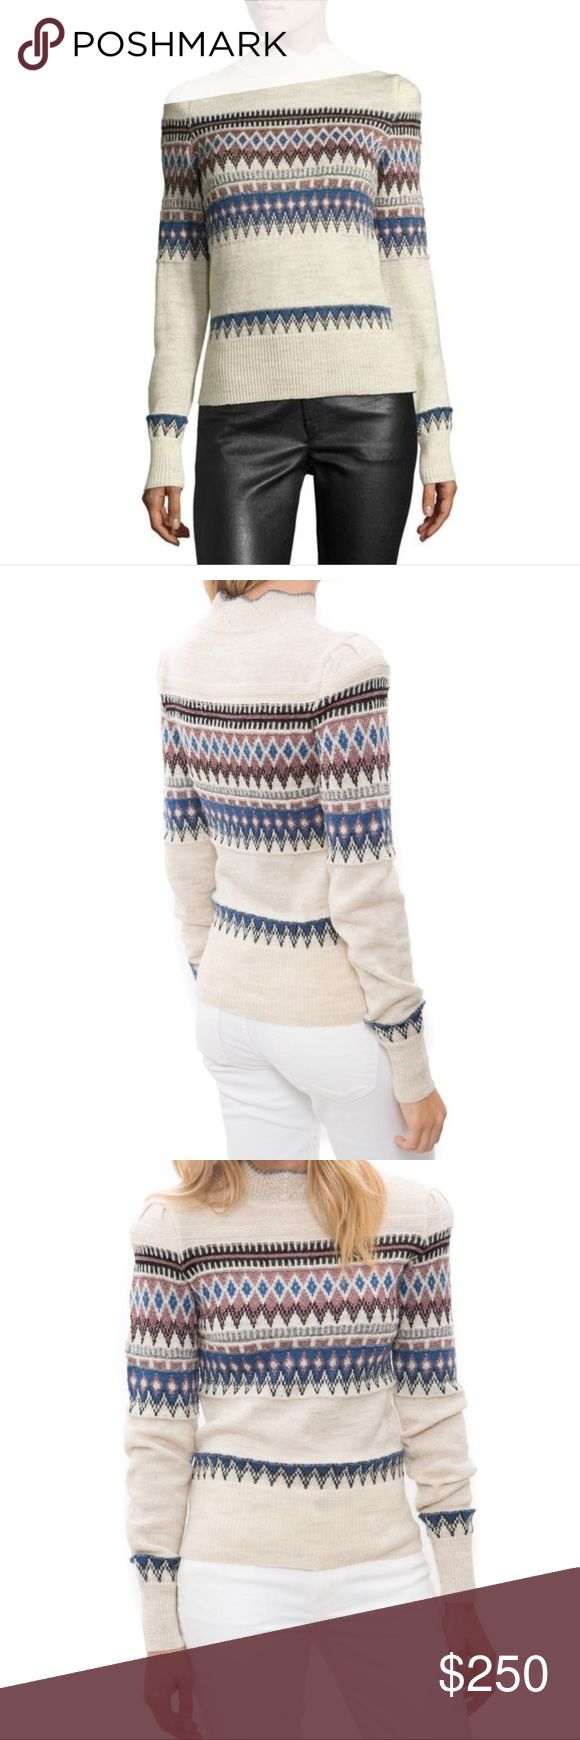 Etoile Isabel Marant, Blake Fair Isle Ecru Sweater This sweater is simply gorgeous on the hanger & gives a slim feminine shilhoutte when on! It's crafted from a wool blend with metallic threading for a subtle sparkle. The design is influenced by Scandanavian intarsia knit. I've worn it for aprés-ski & with a plum skirt for work and after-work cocktails.  It's highly versatile. I had a mishap with my original so I ordered another, but it's the wrong size. It's never been worn & VERY difficult…